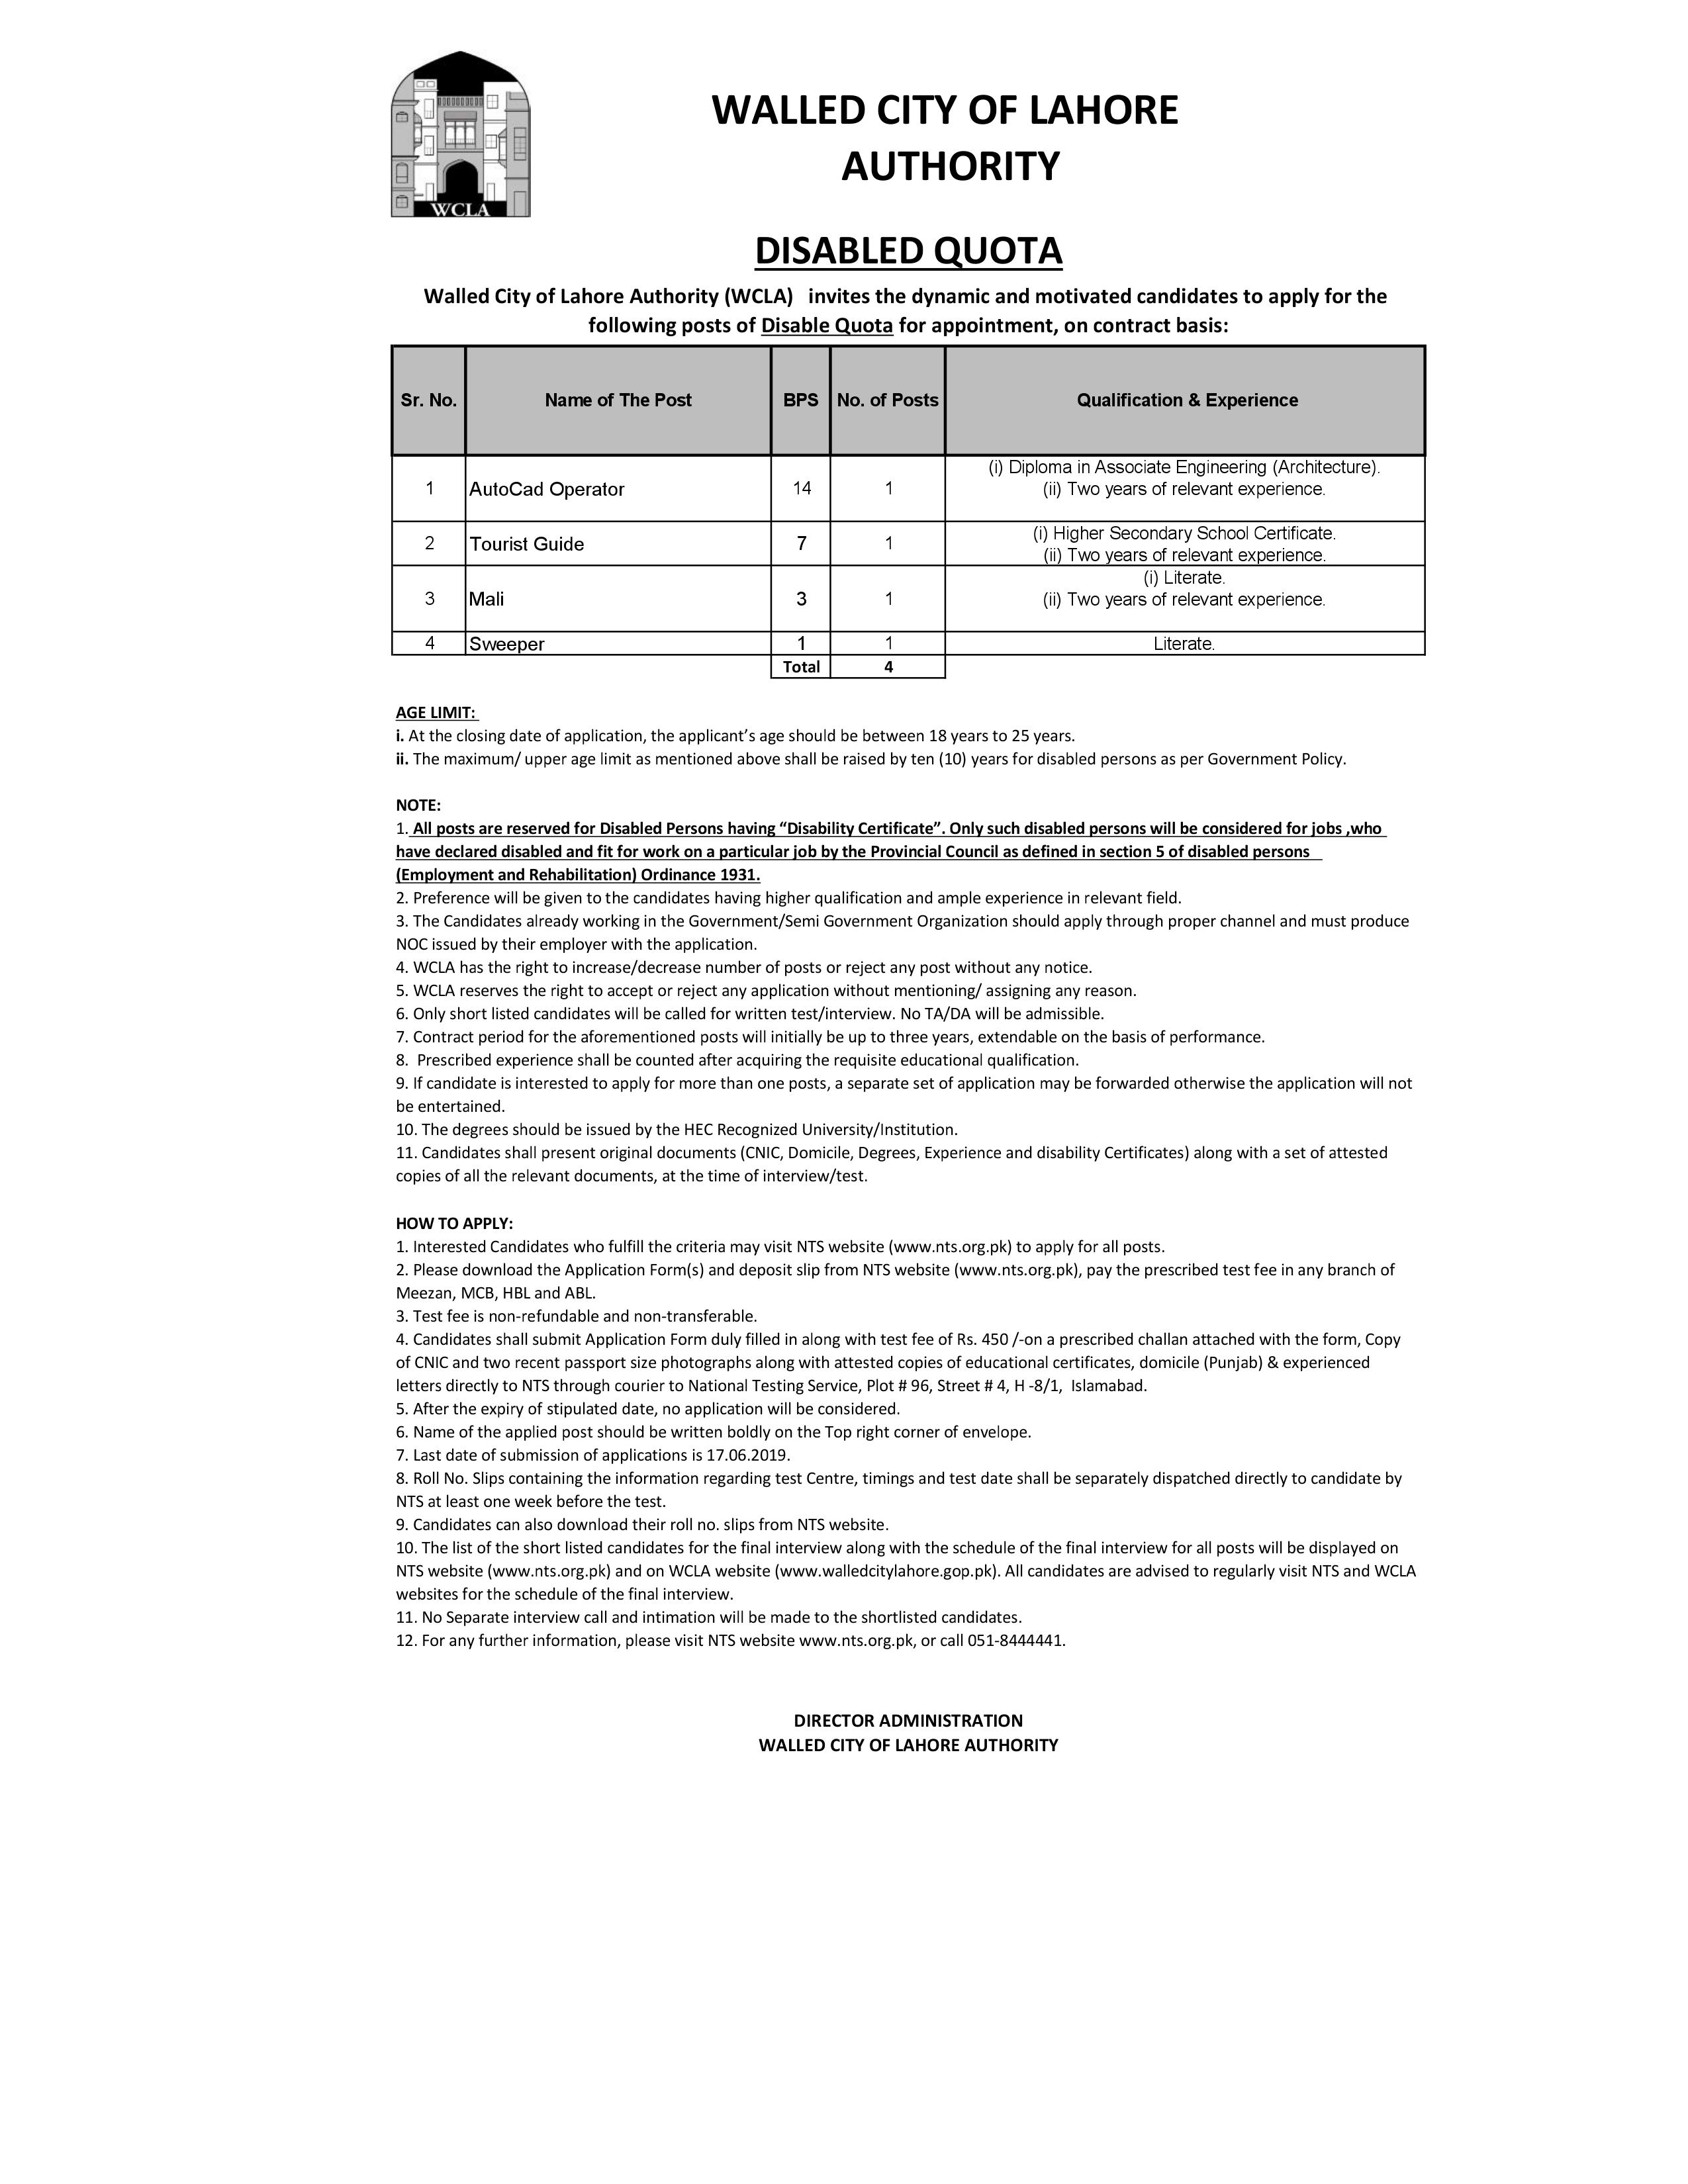 Walled City of Lahore Authority WLCA Jobs NTS Test Result